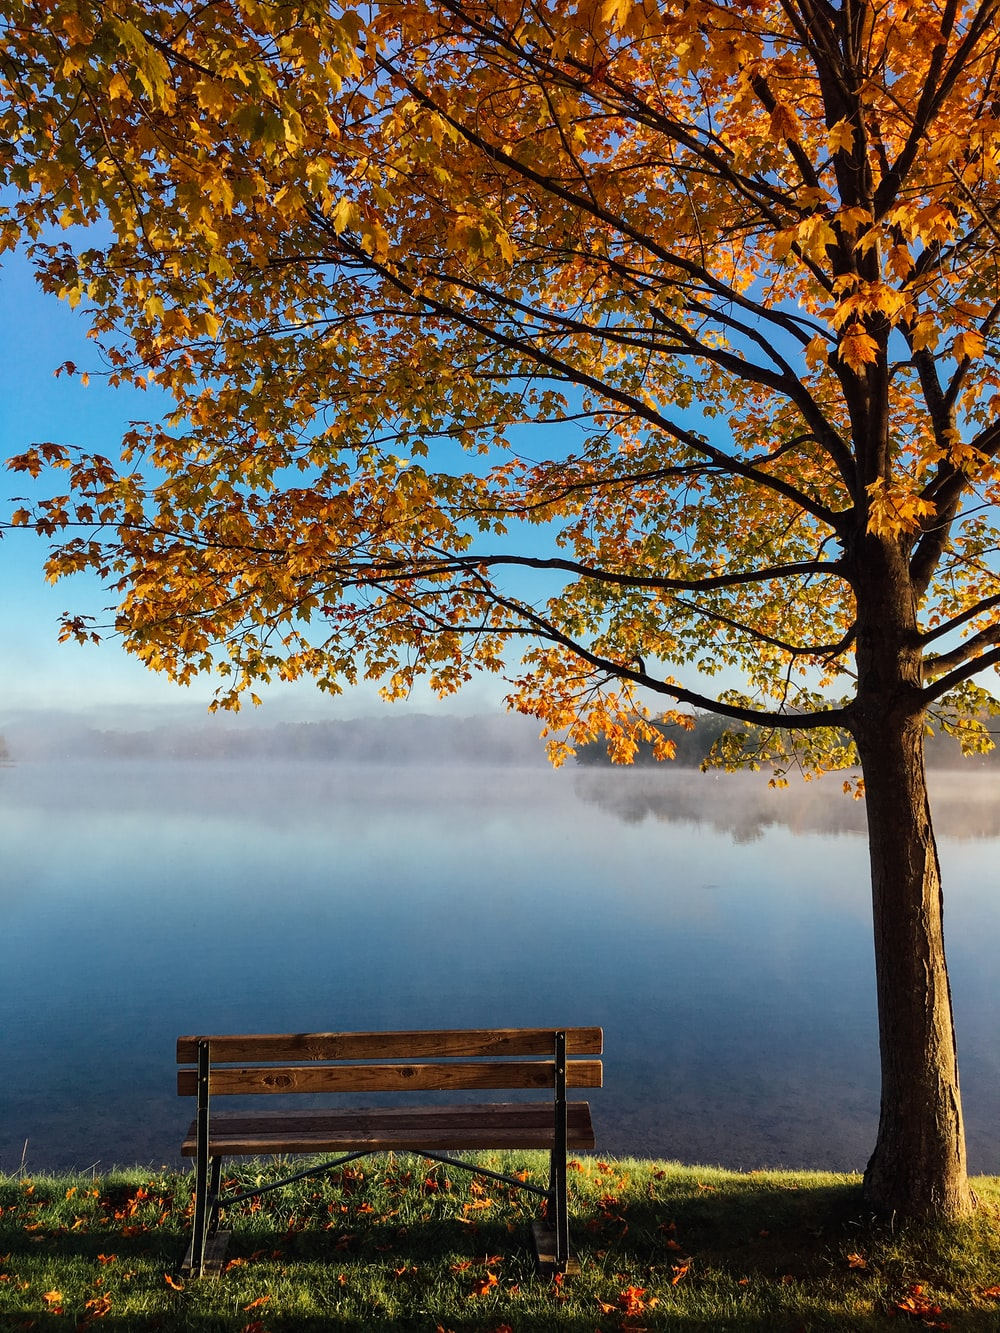 500 Bench Pictures Hd Download Free Images On Unsplash 22,119 best background free video clip downloads from the videezy community. 500 bench pictures hd download